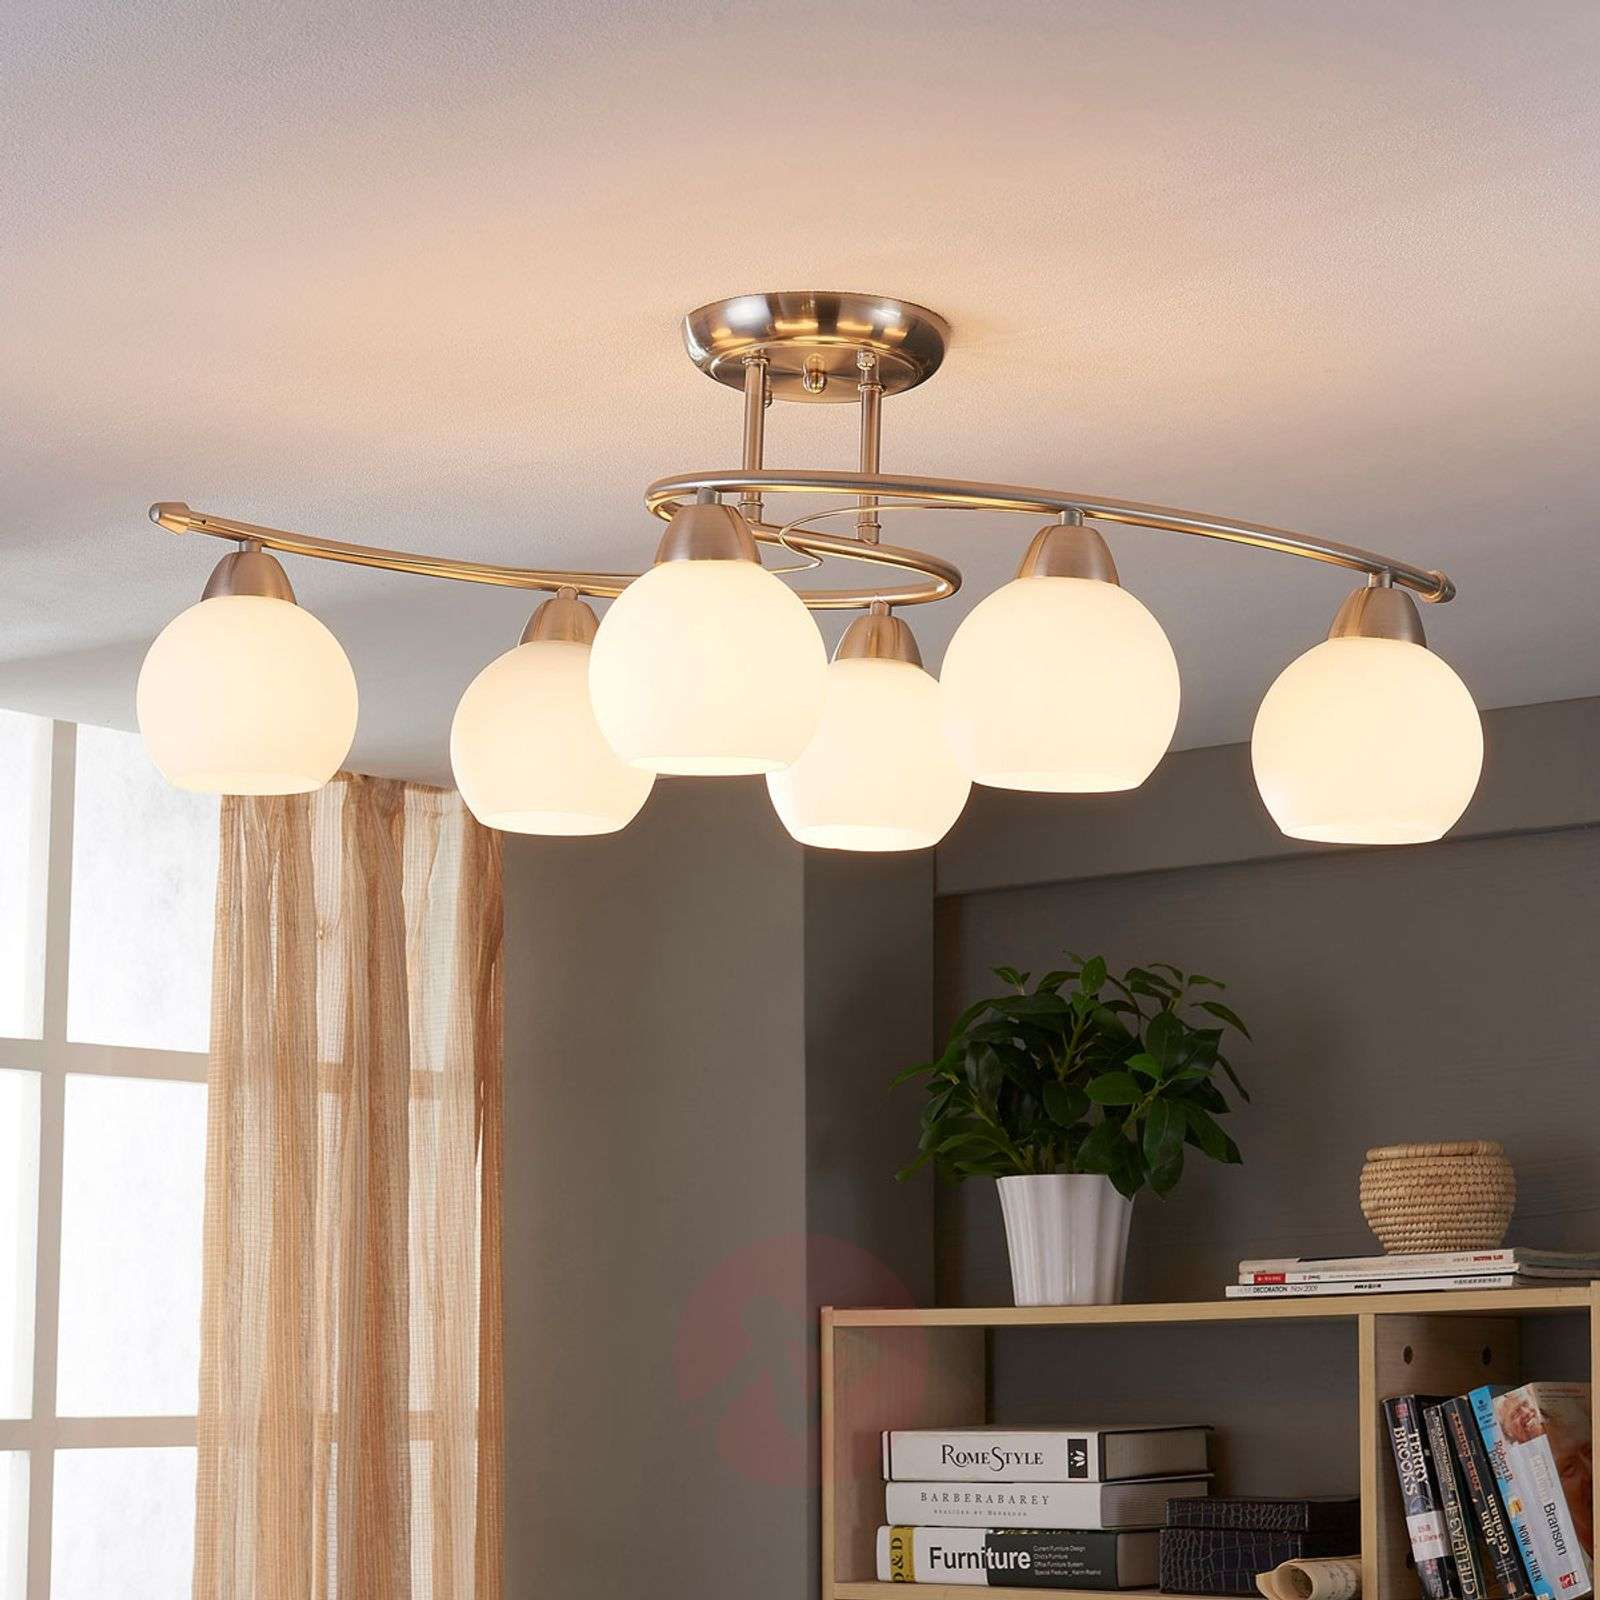 Dining room ceiling light svean 6 bulbs